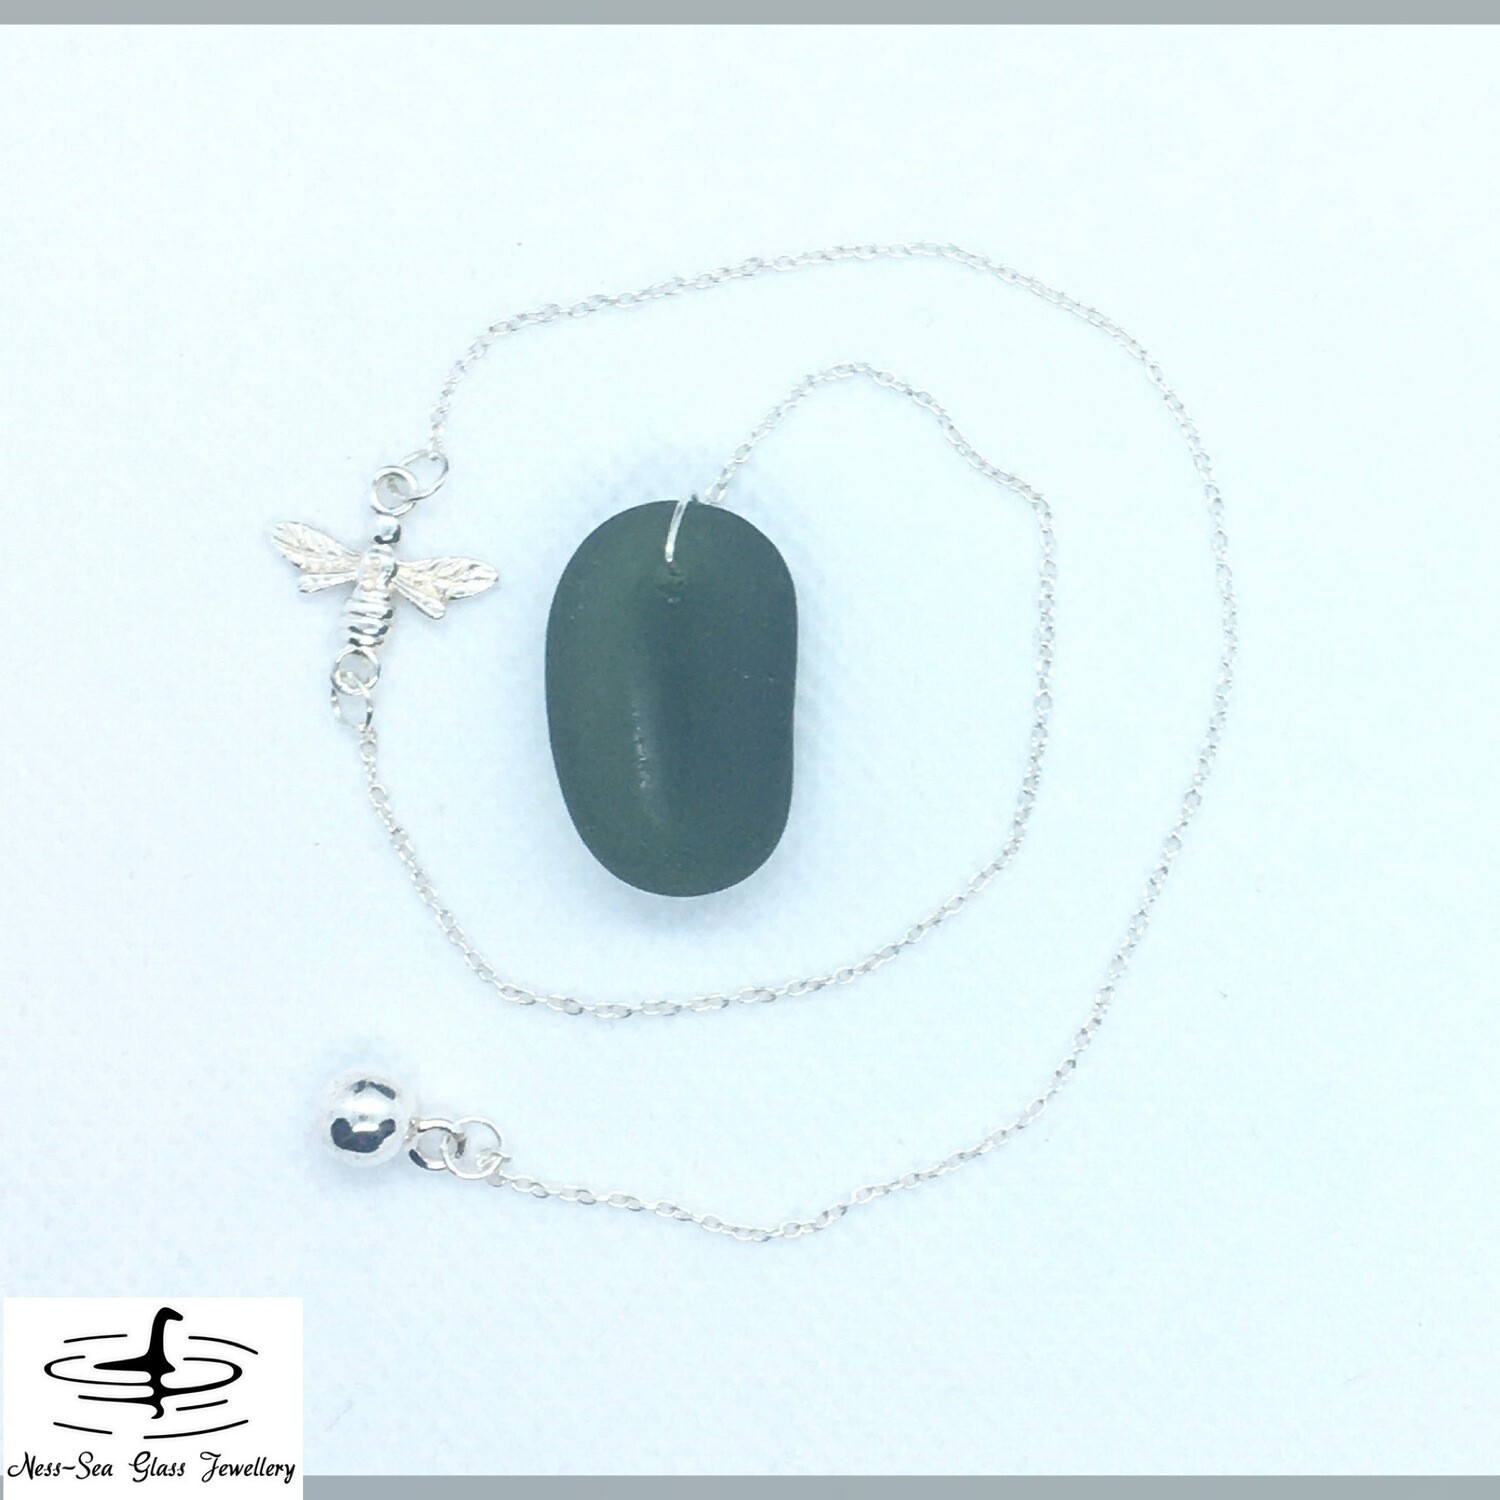 Green Loch Ness Sea Glass Dowsing Pendulum with Sterling Silver Bee design and Sterling Silver Chain